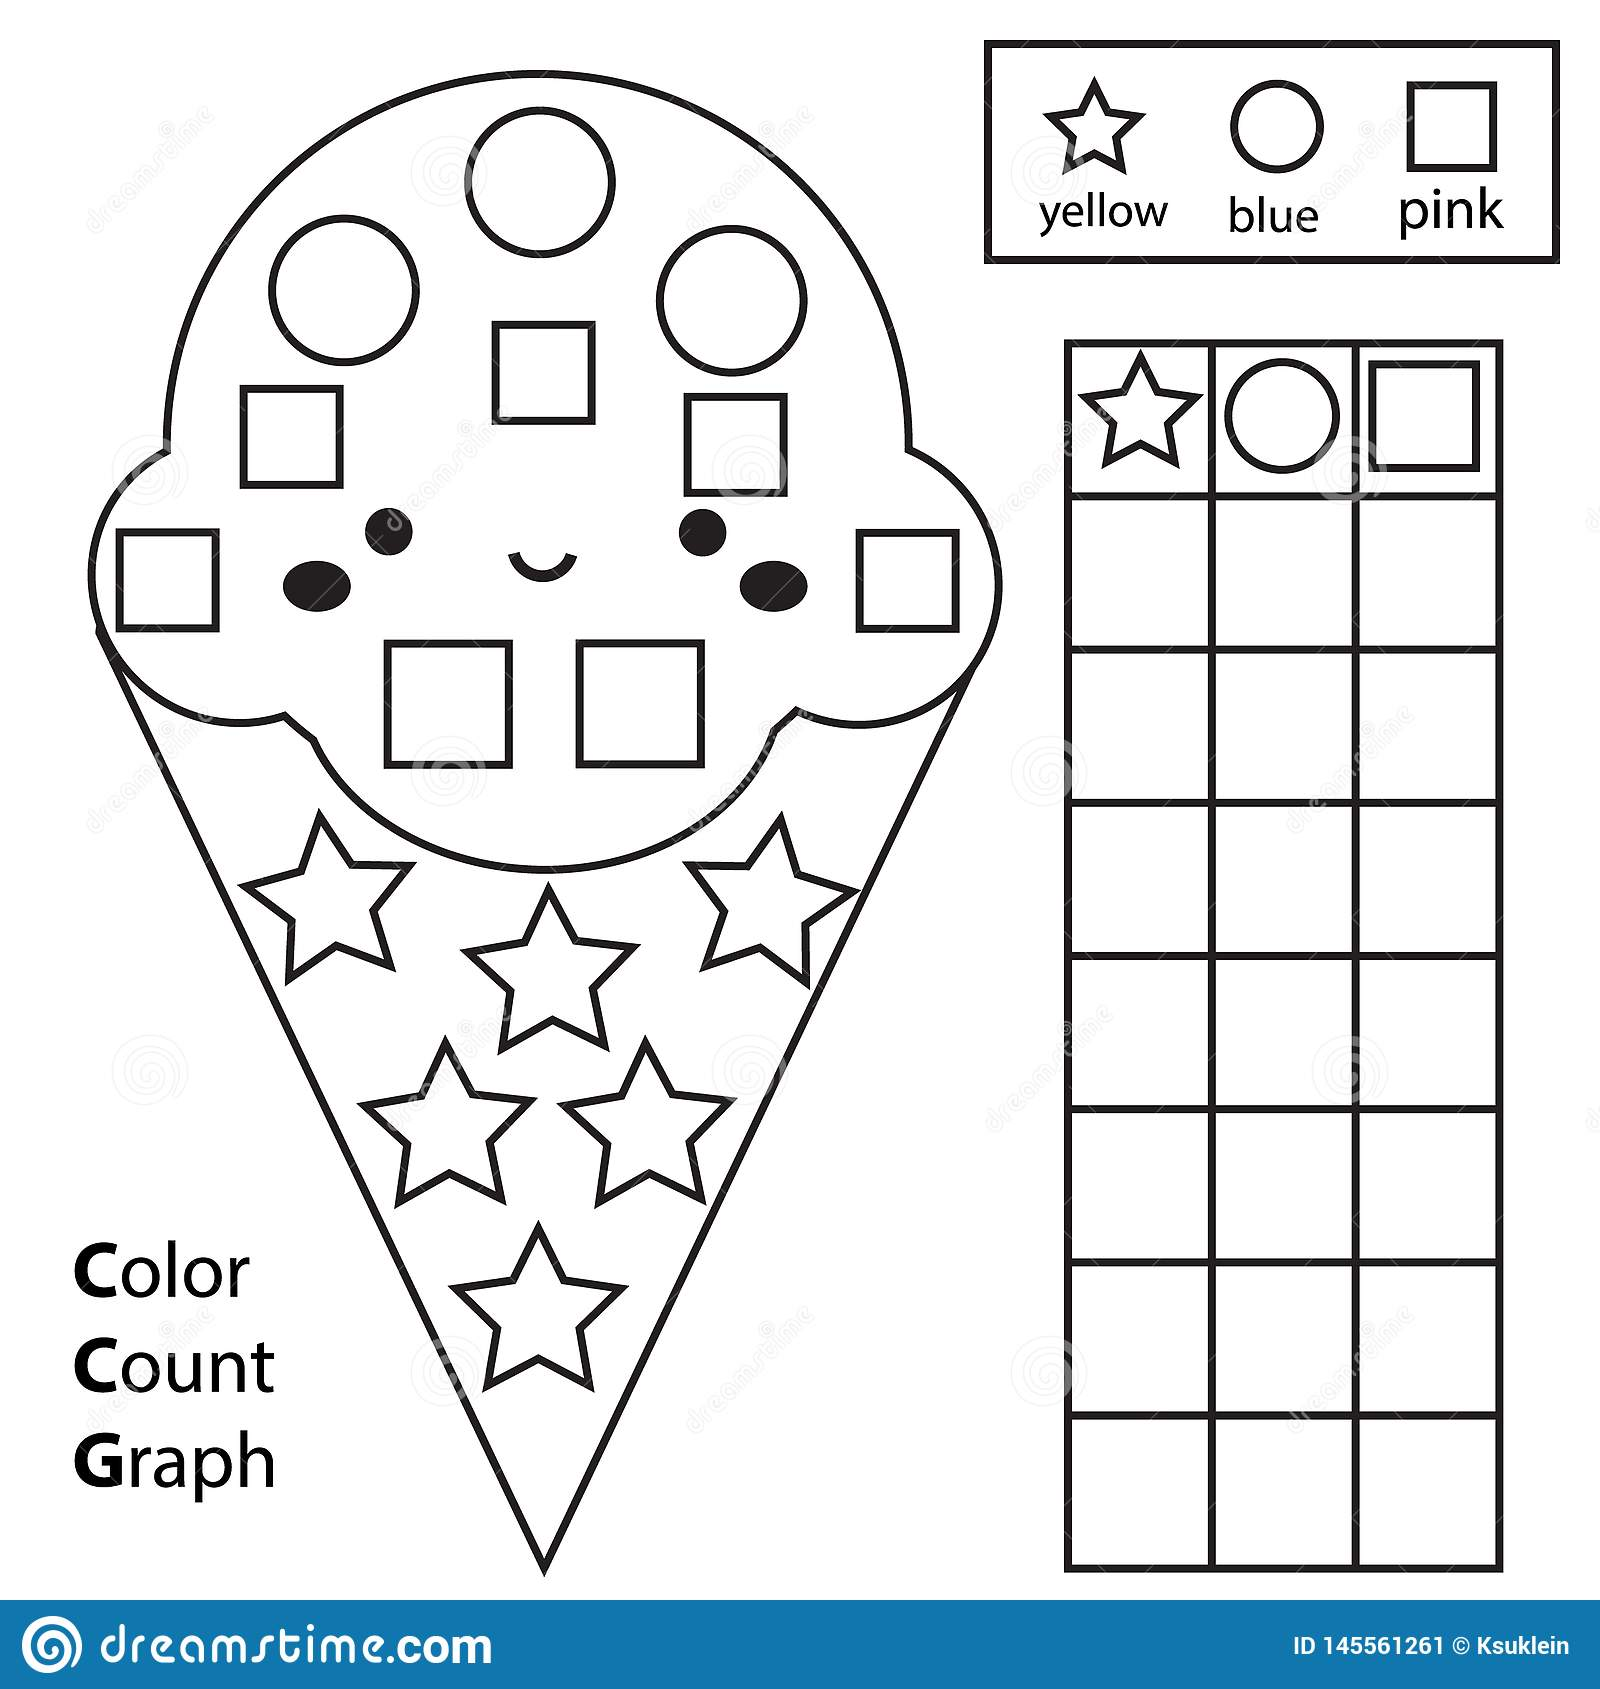 Kindergarten Worksheet Color White